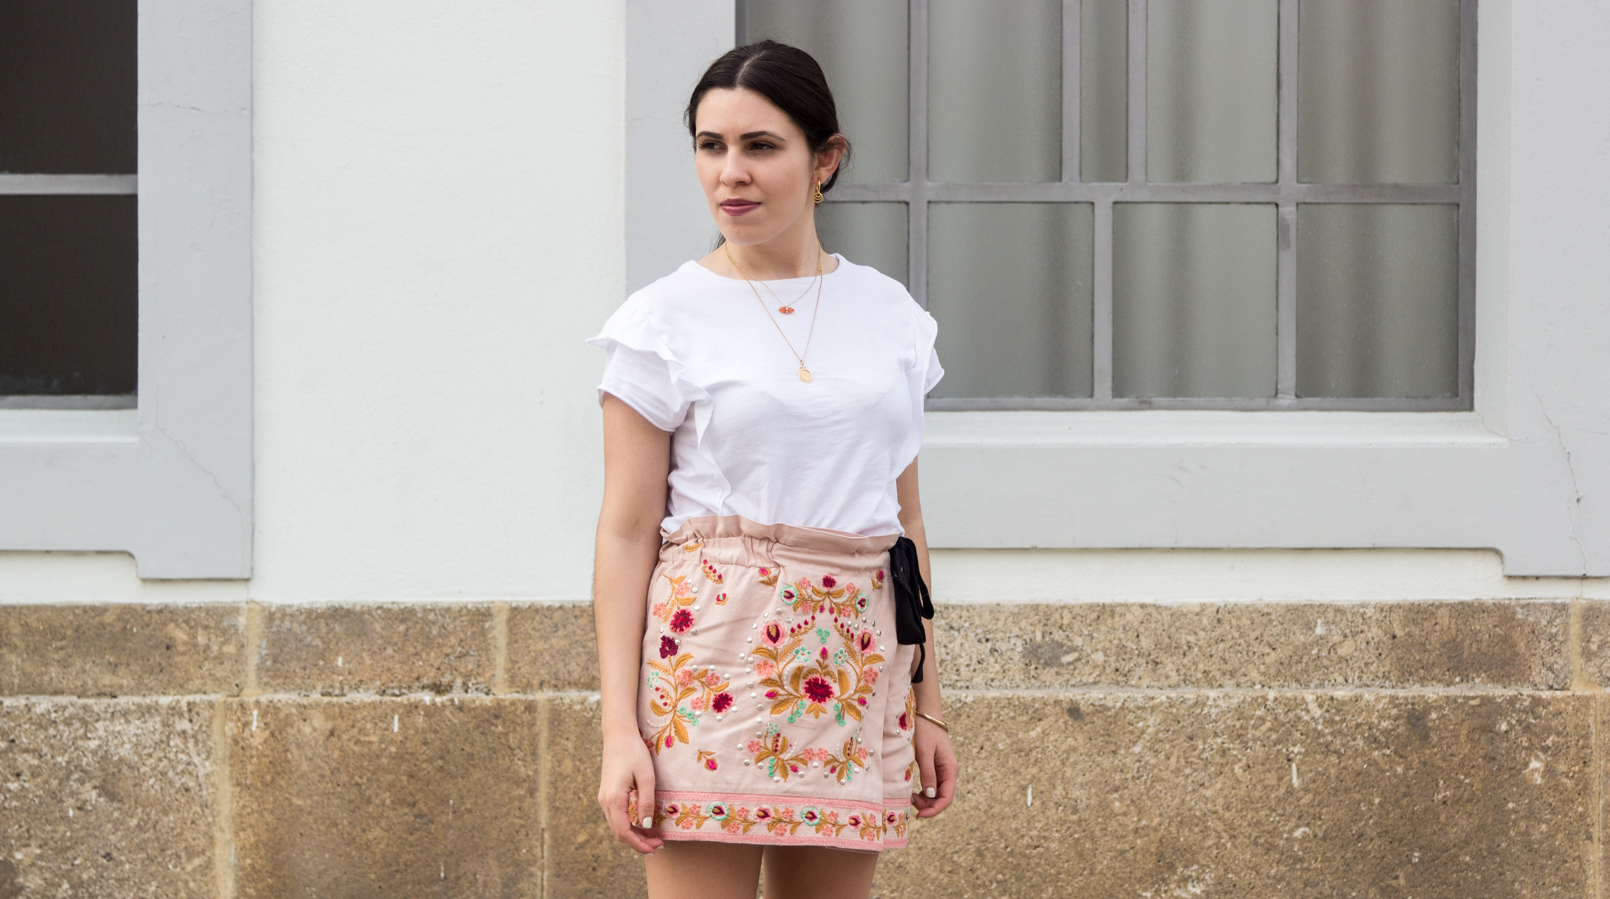 Le Fashionaire What to buy on sales? zara pink embroidered flowers black bow shorts white tee ruffles zara hoops pia silver gold cinco earrings semi precious stone hm necklace 3536F EN